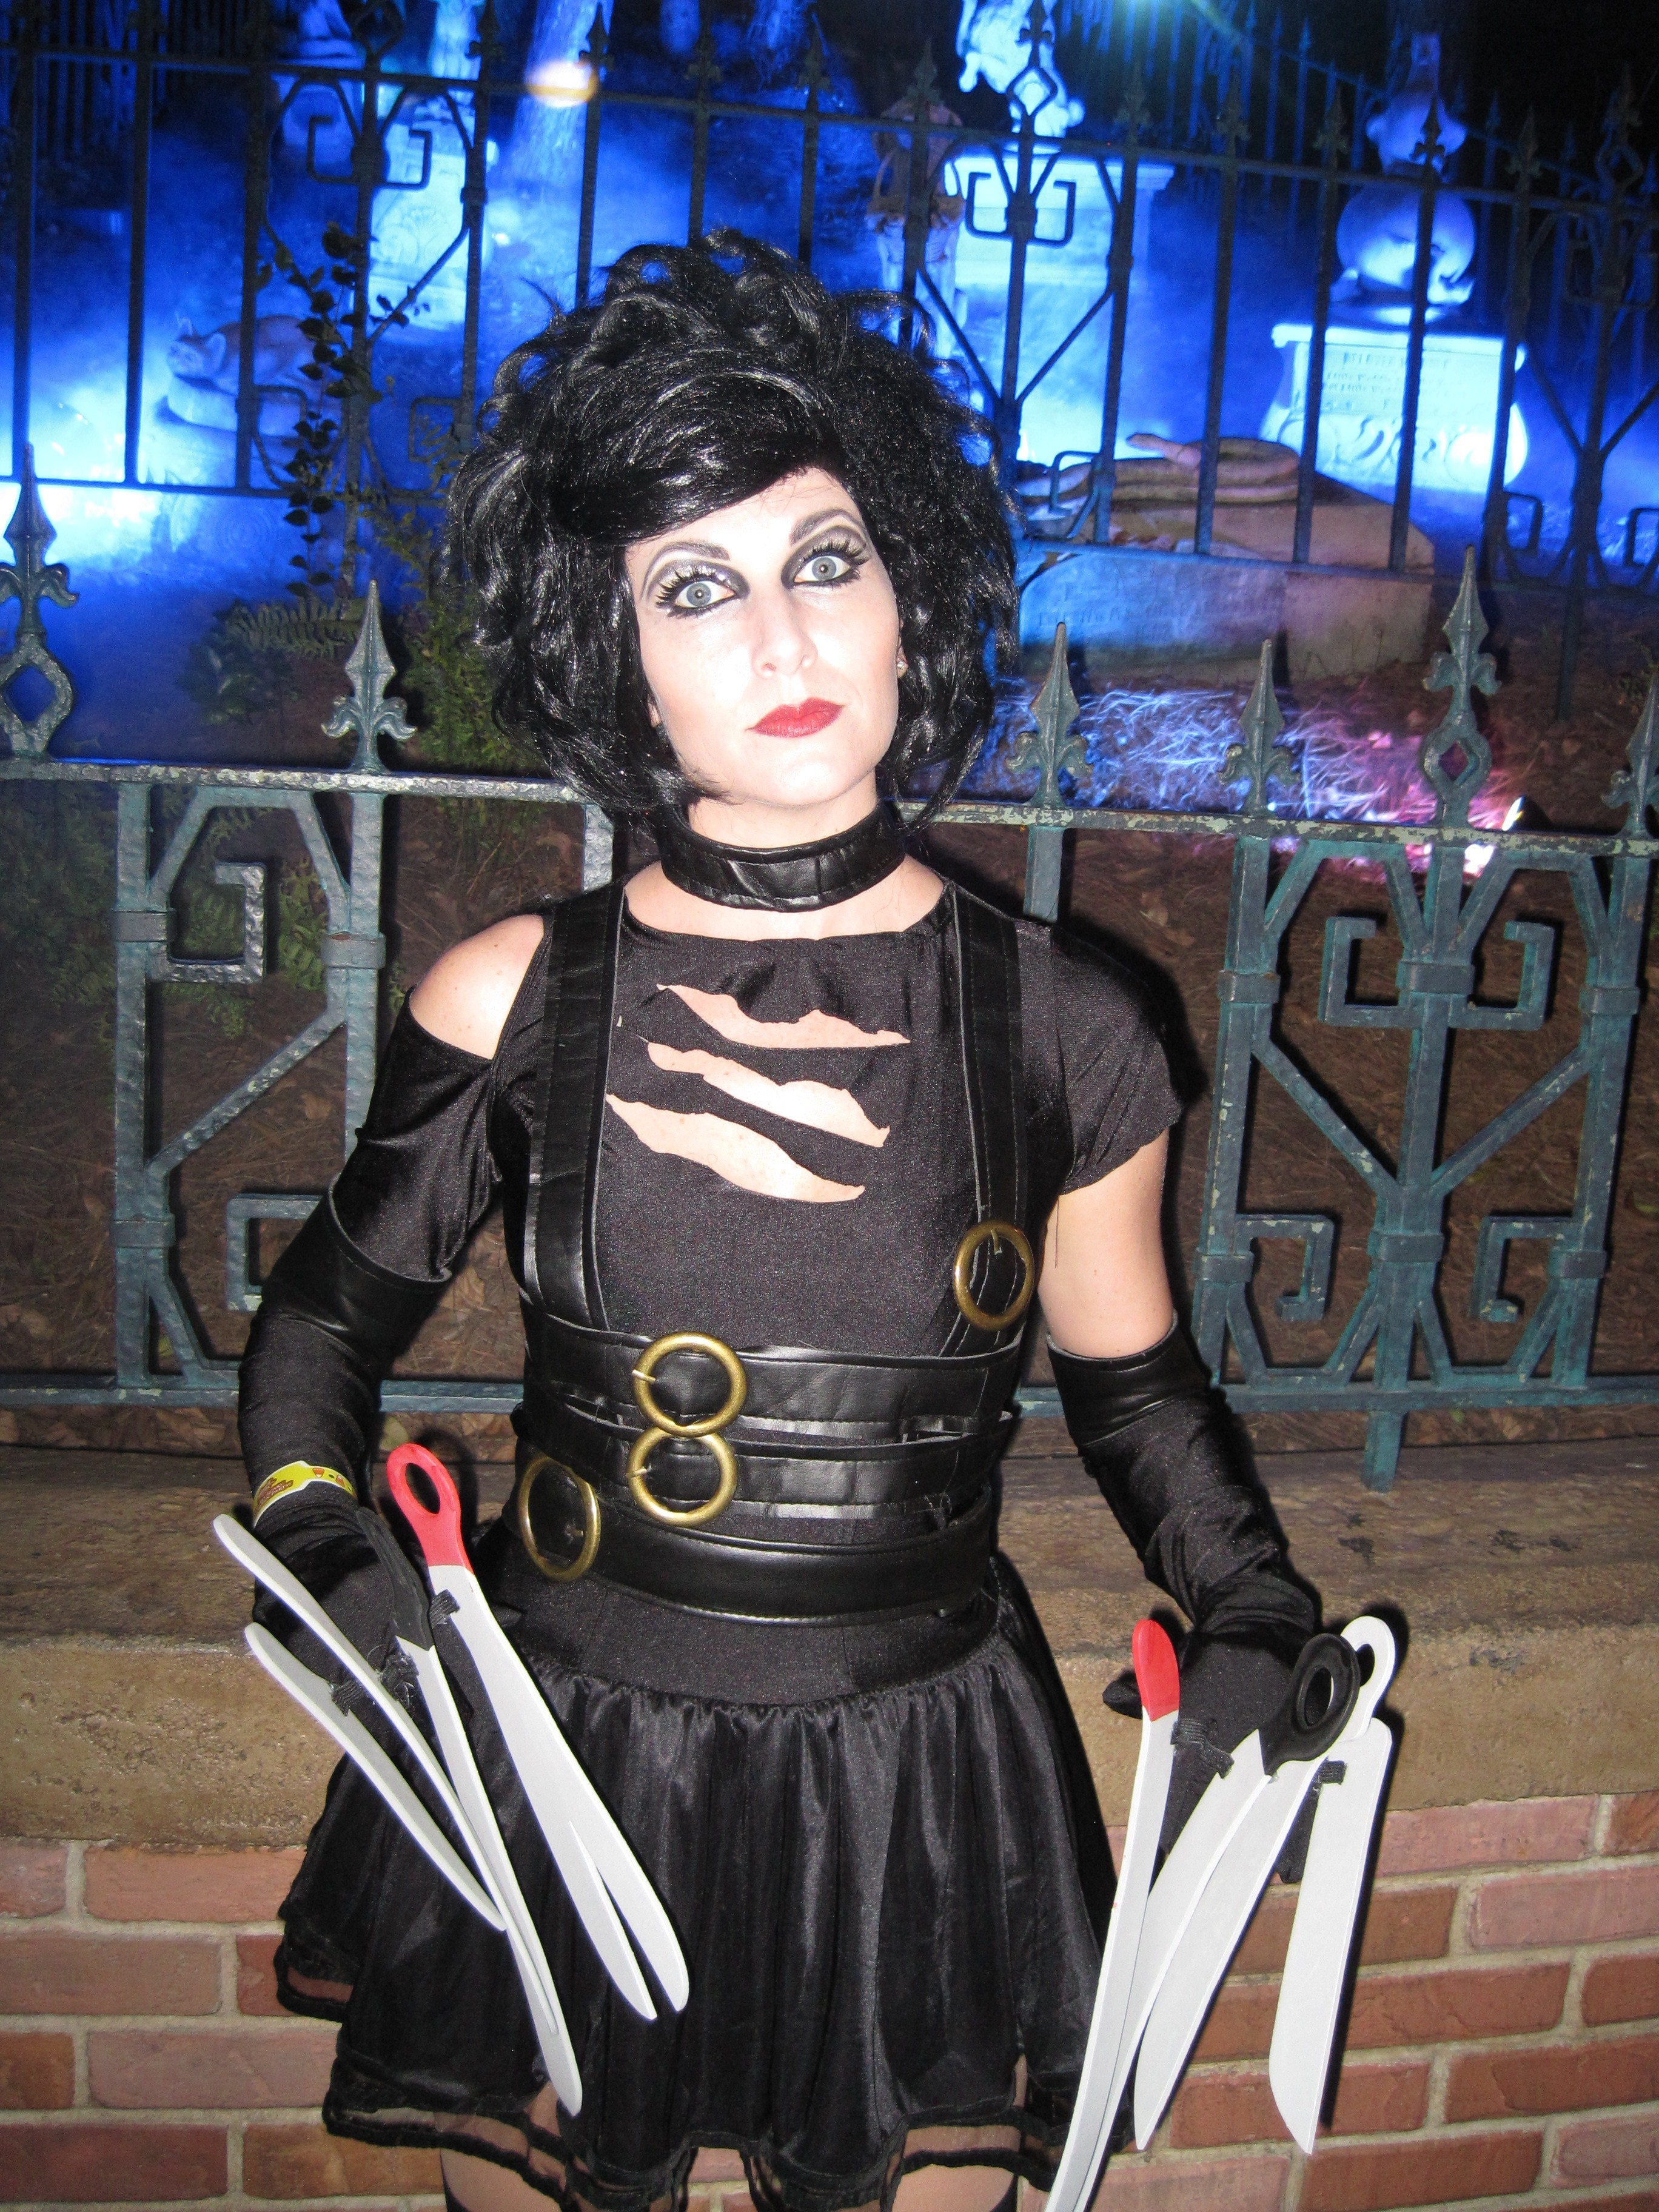 shauna as miss scissorhands outside the haunted mansion